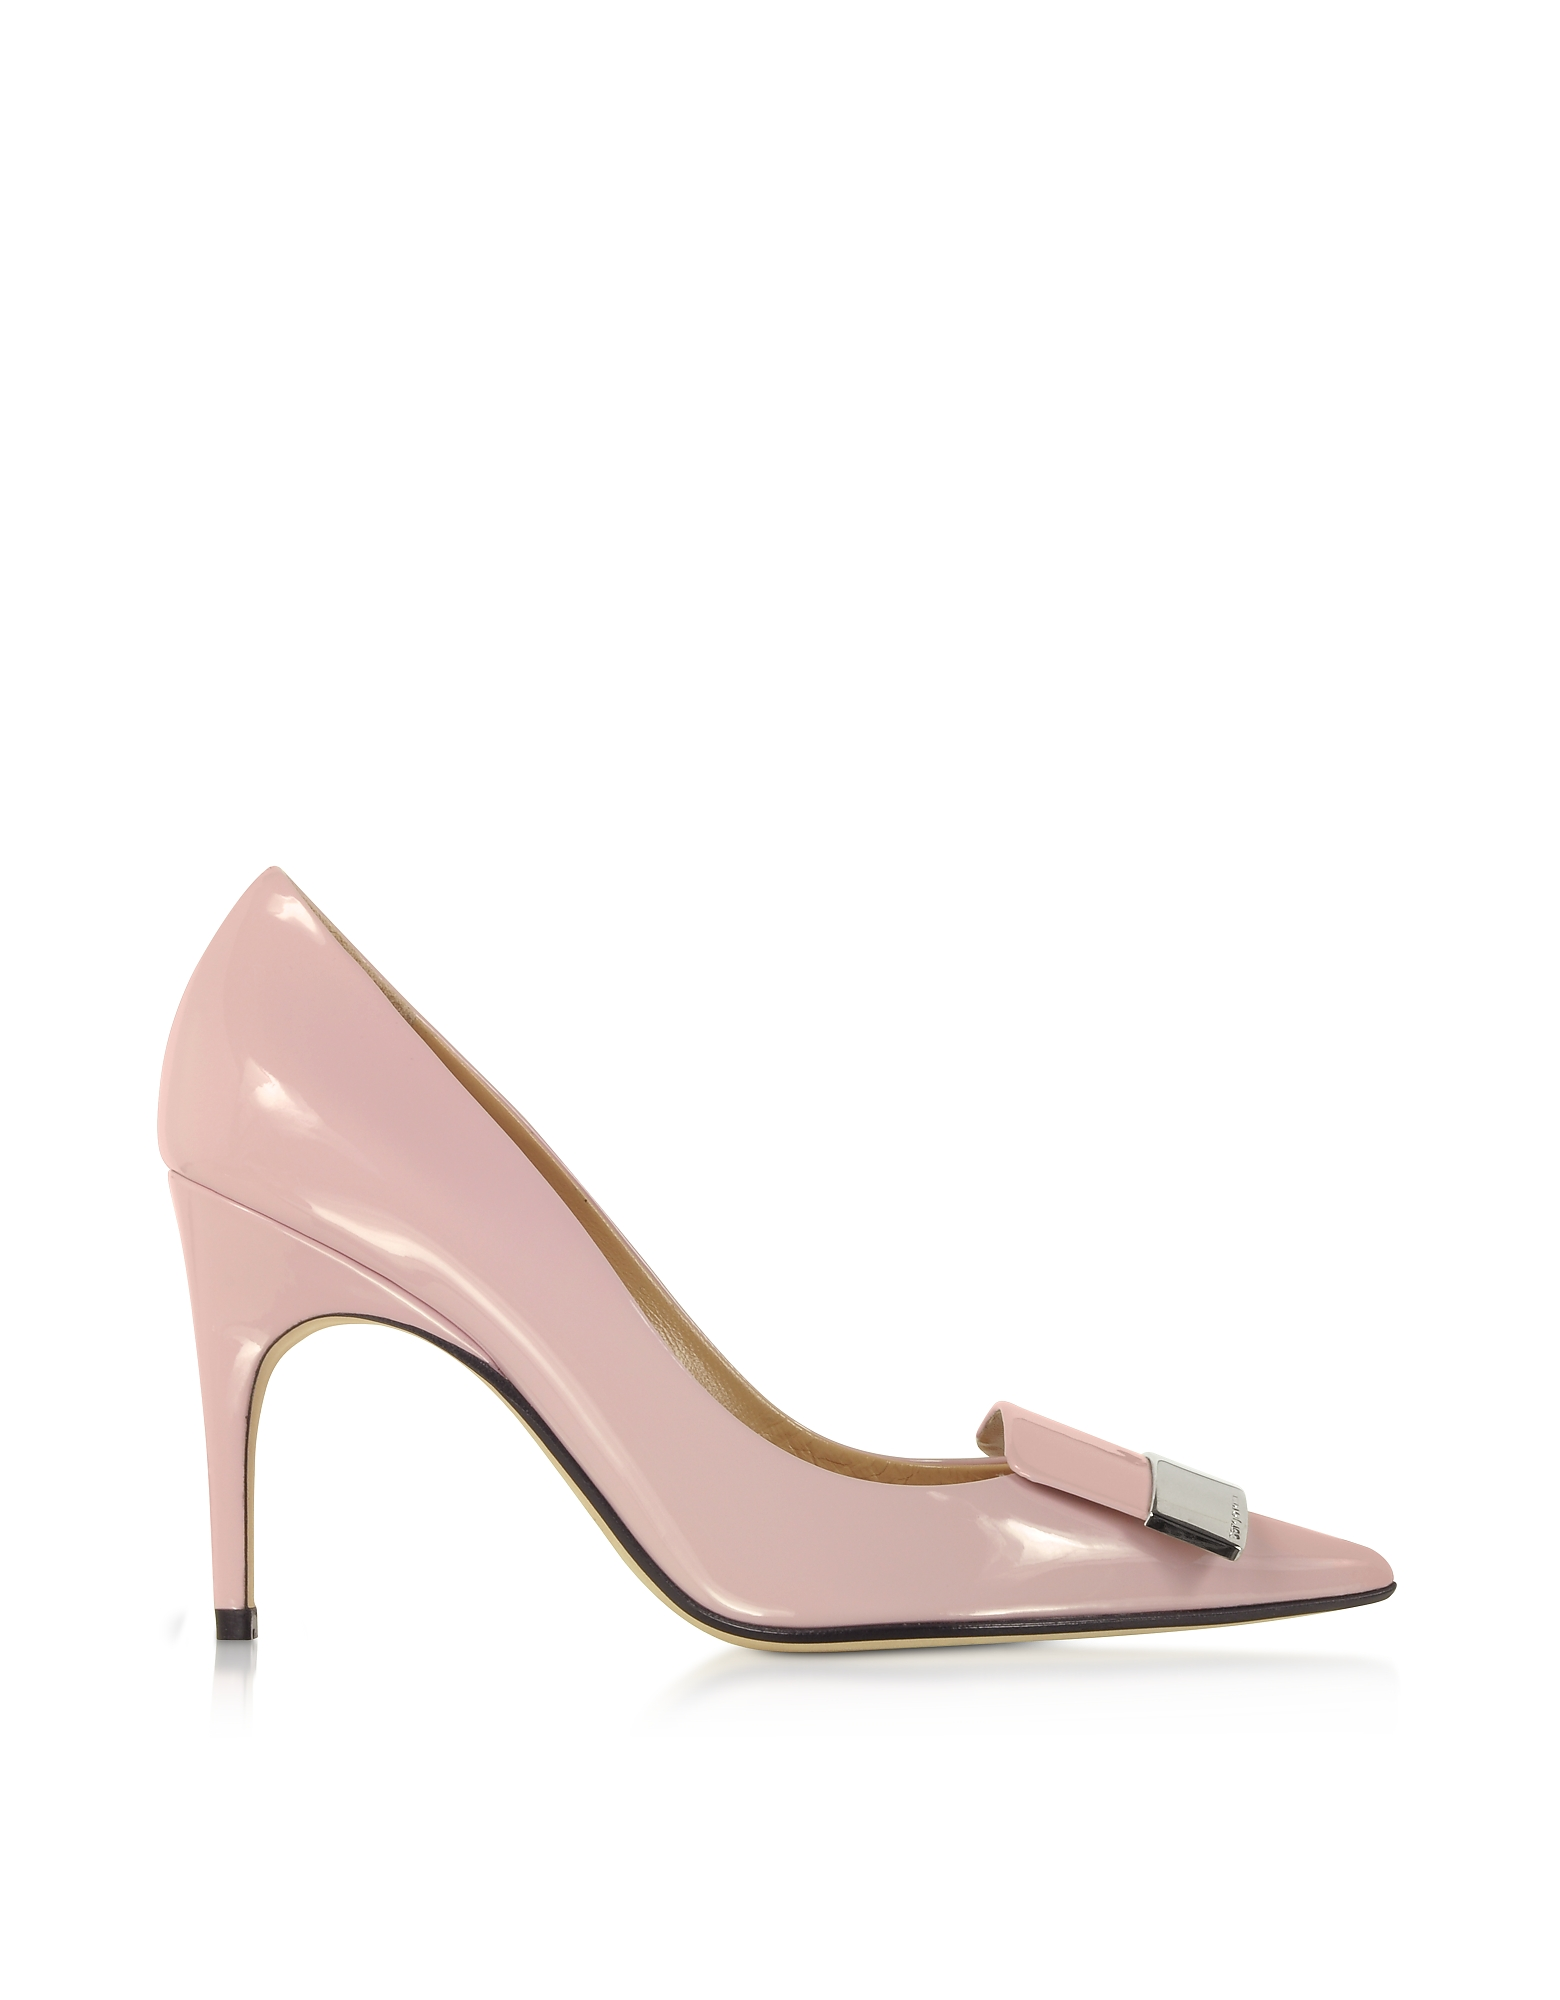 Sergio Rossi Designer Shoes, Soft Blush Patent Leather Pumps